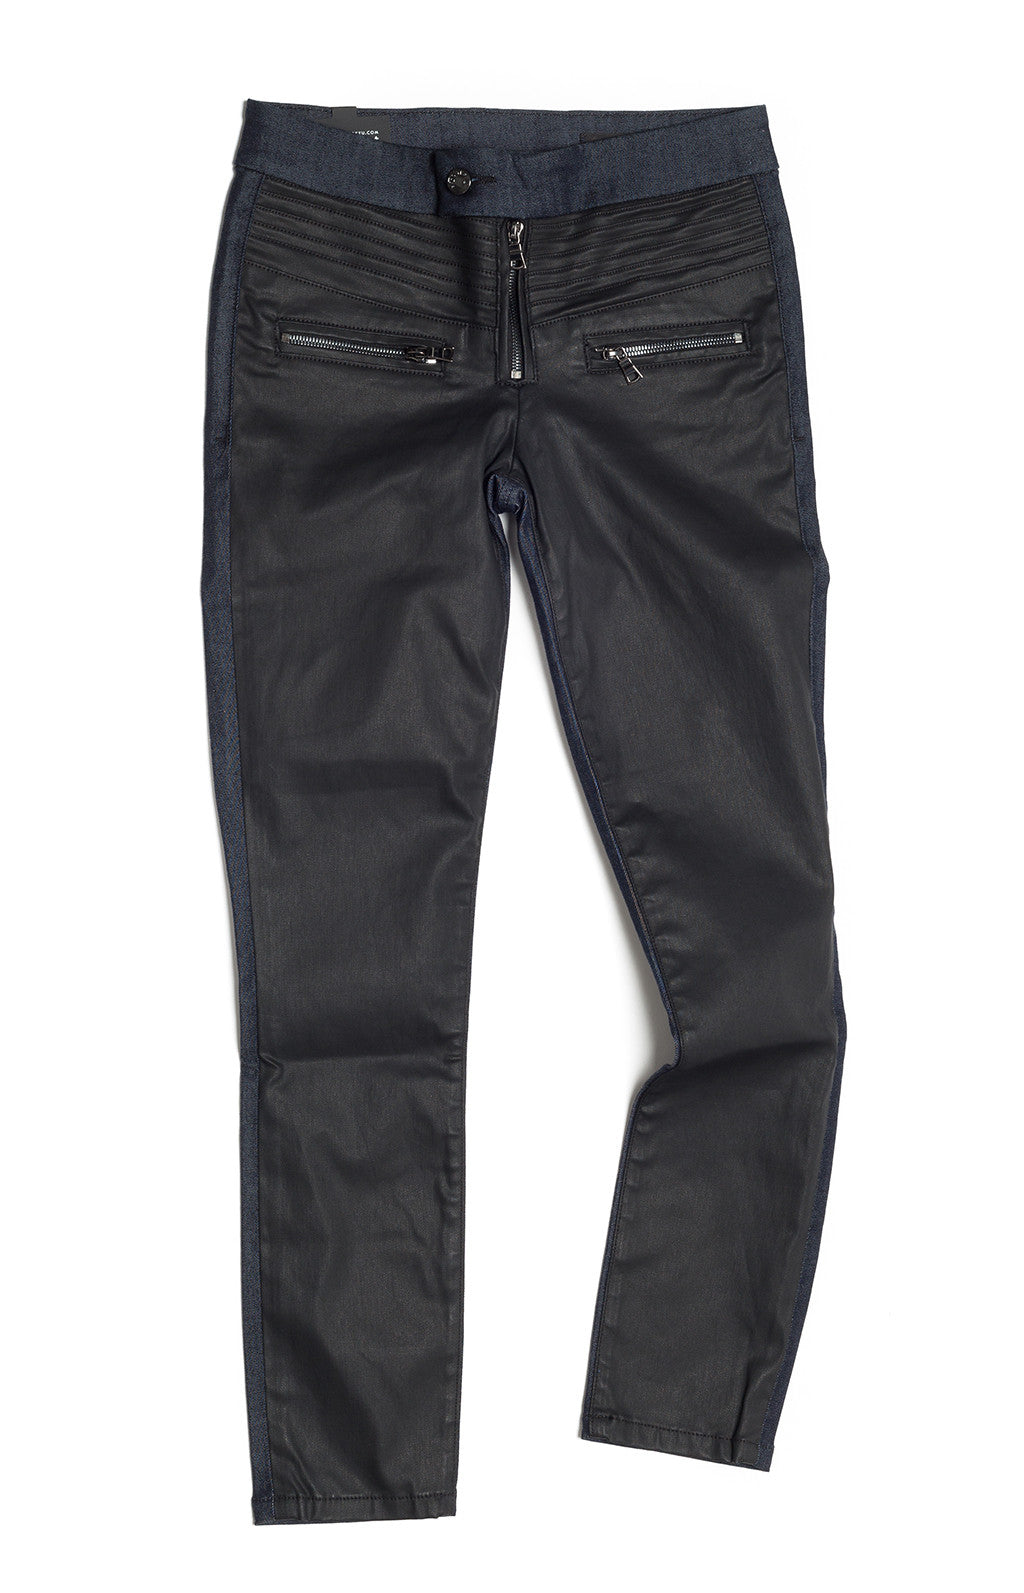 The Icon Stretch Moto Jean - Schoen by Yu - Jeans - TOPGEARNY